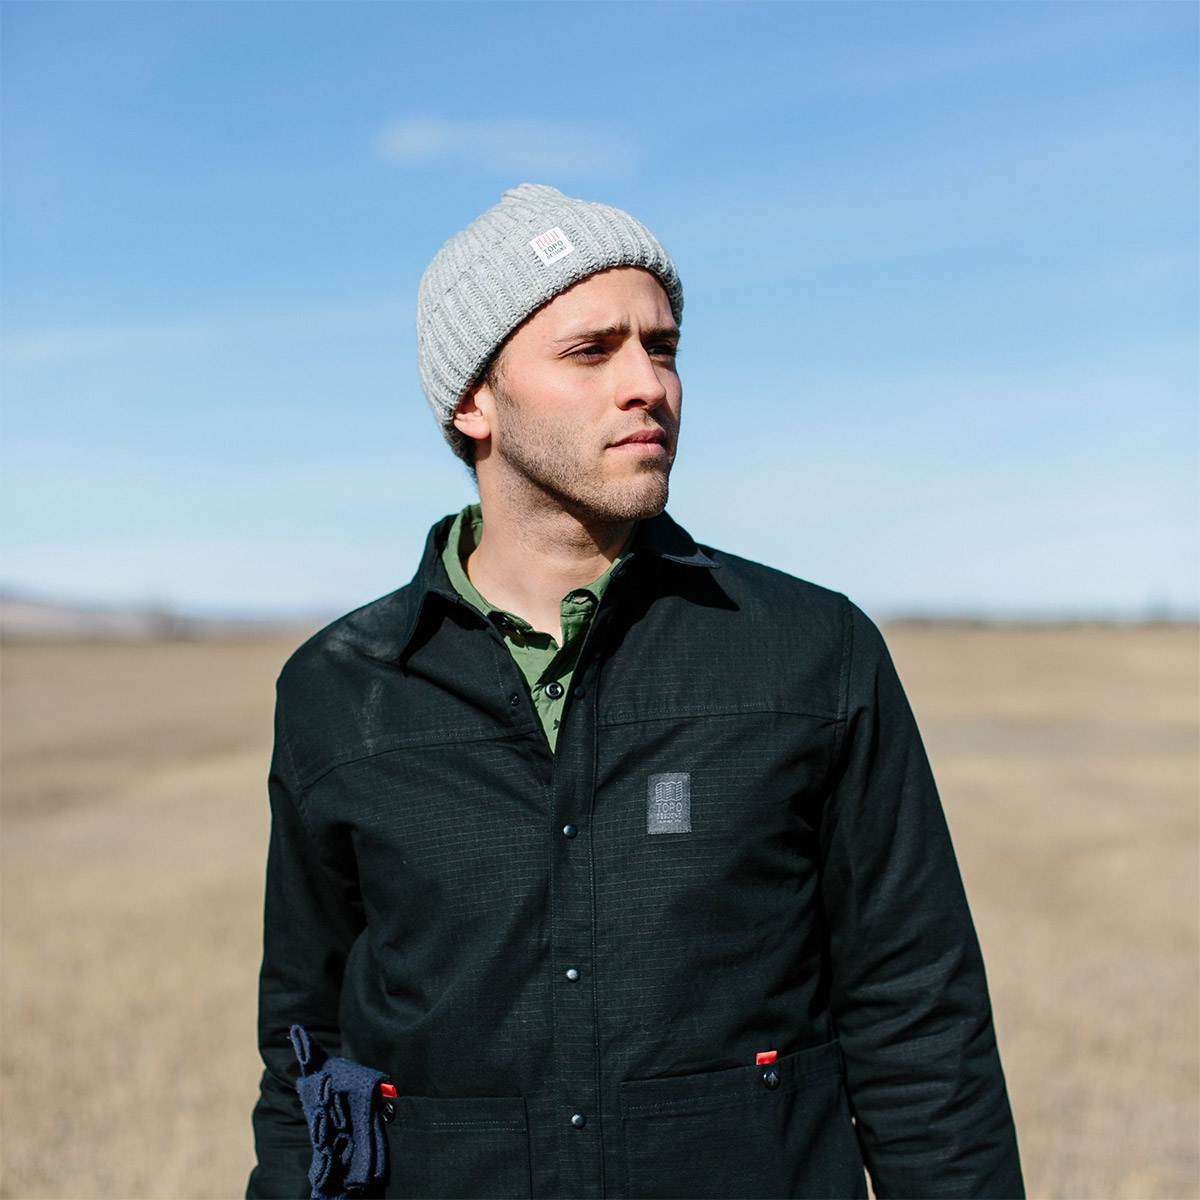 Topo Designs Wool Beanie Gray, 100% merino wool beanie features a chunky, loose knit weave.